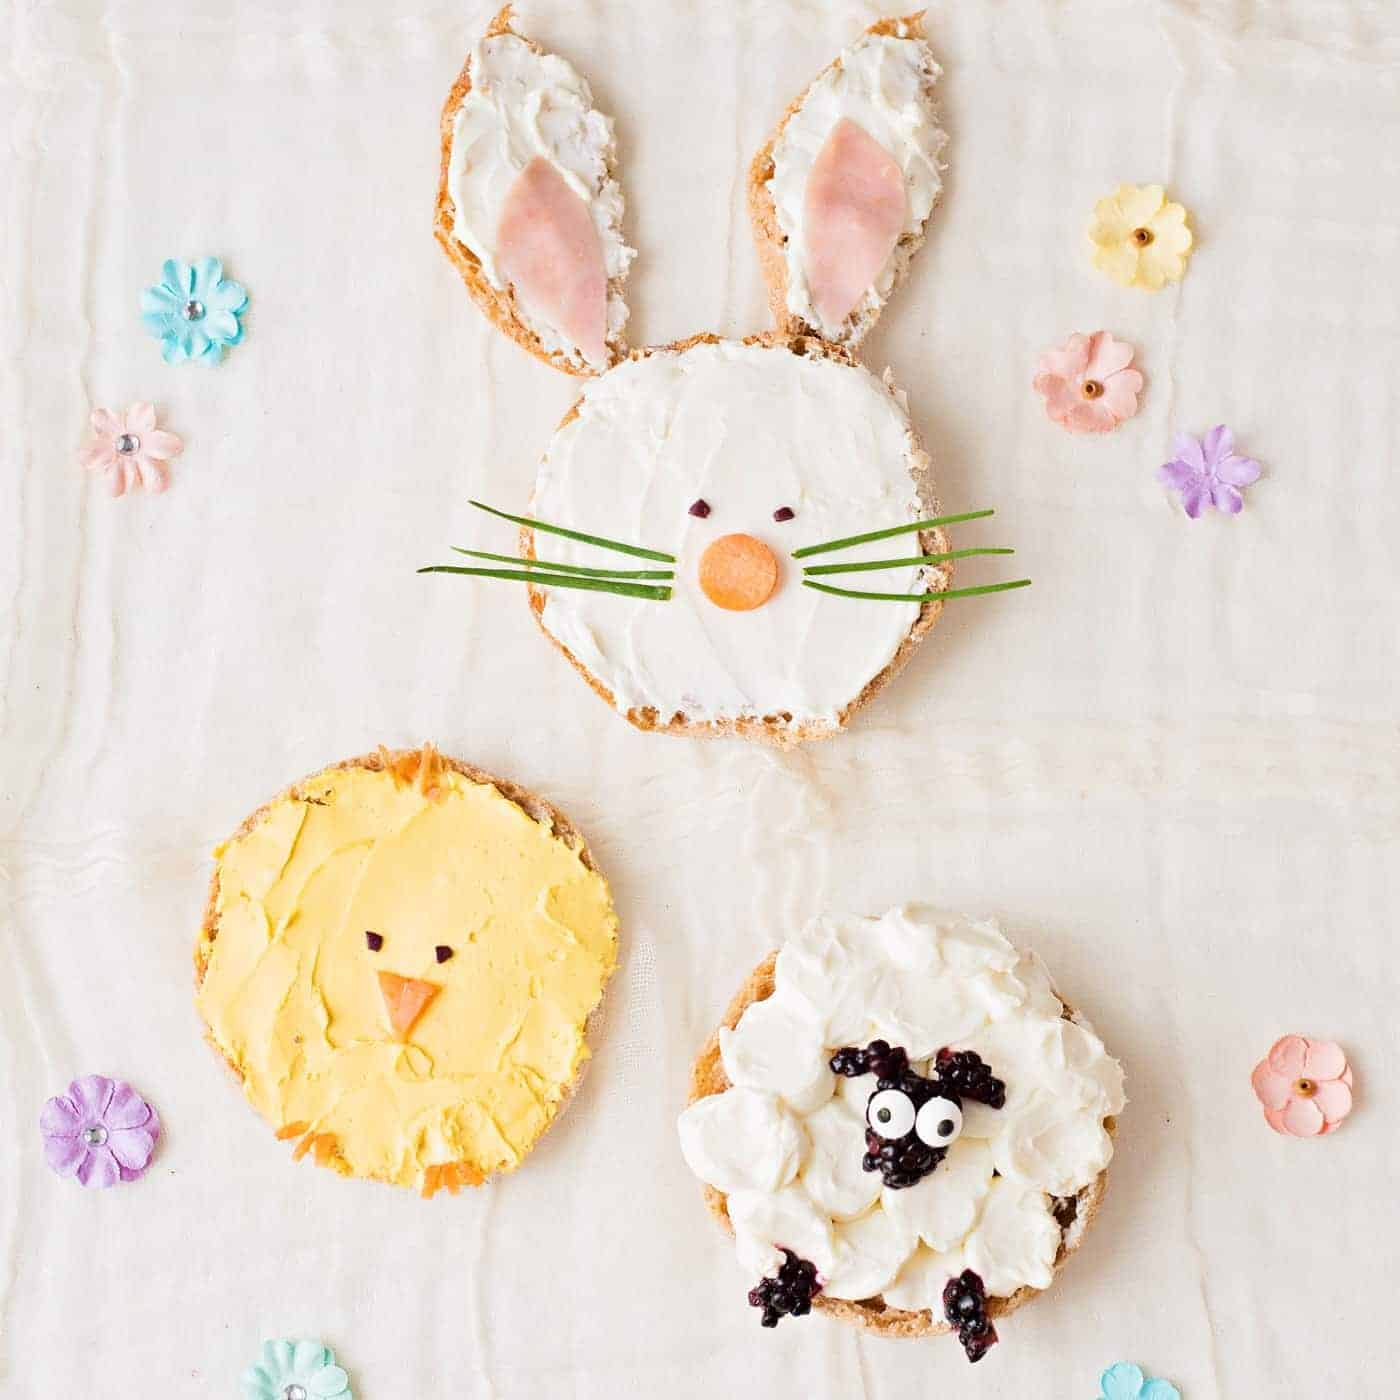 20 Super Cute Foods That Look Like Animals